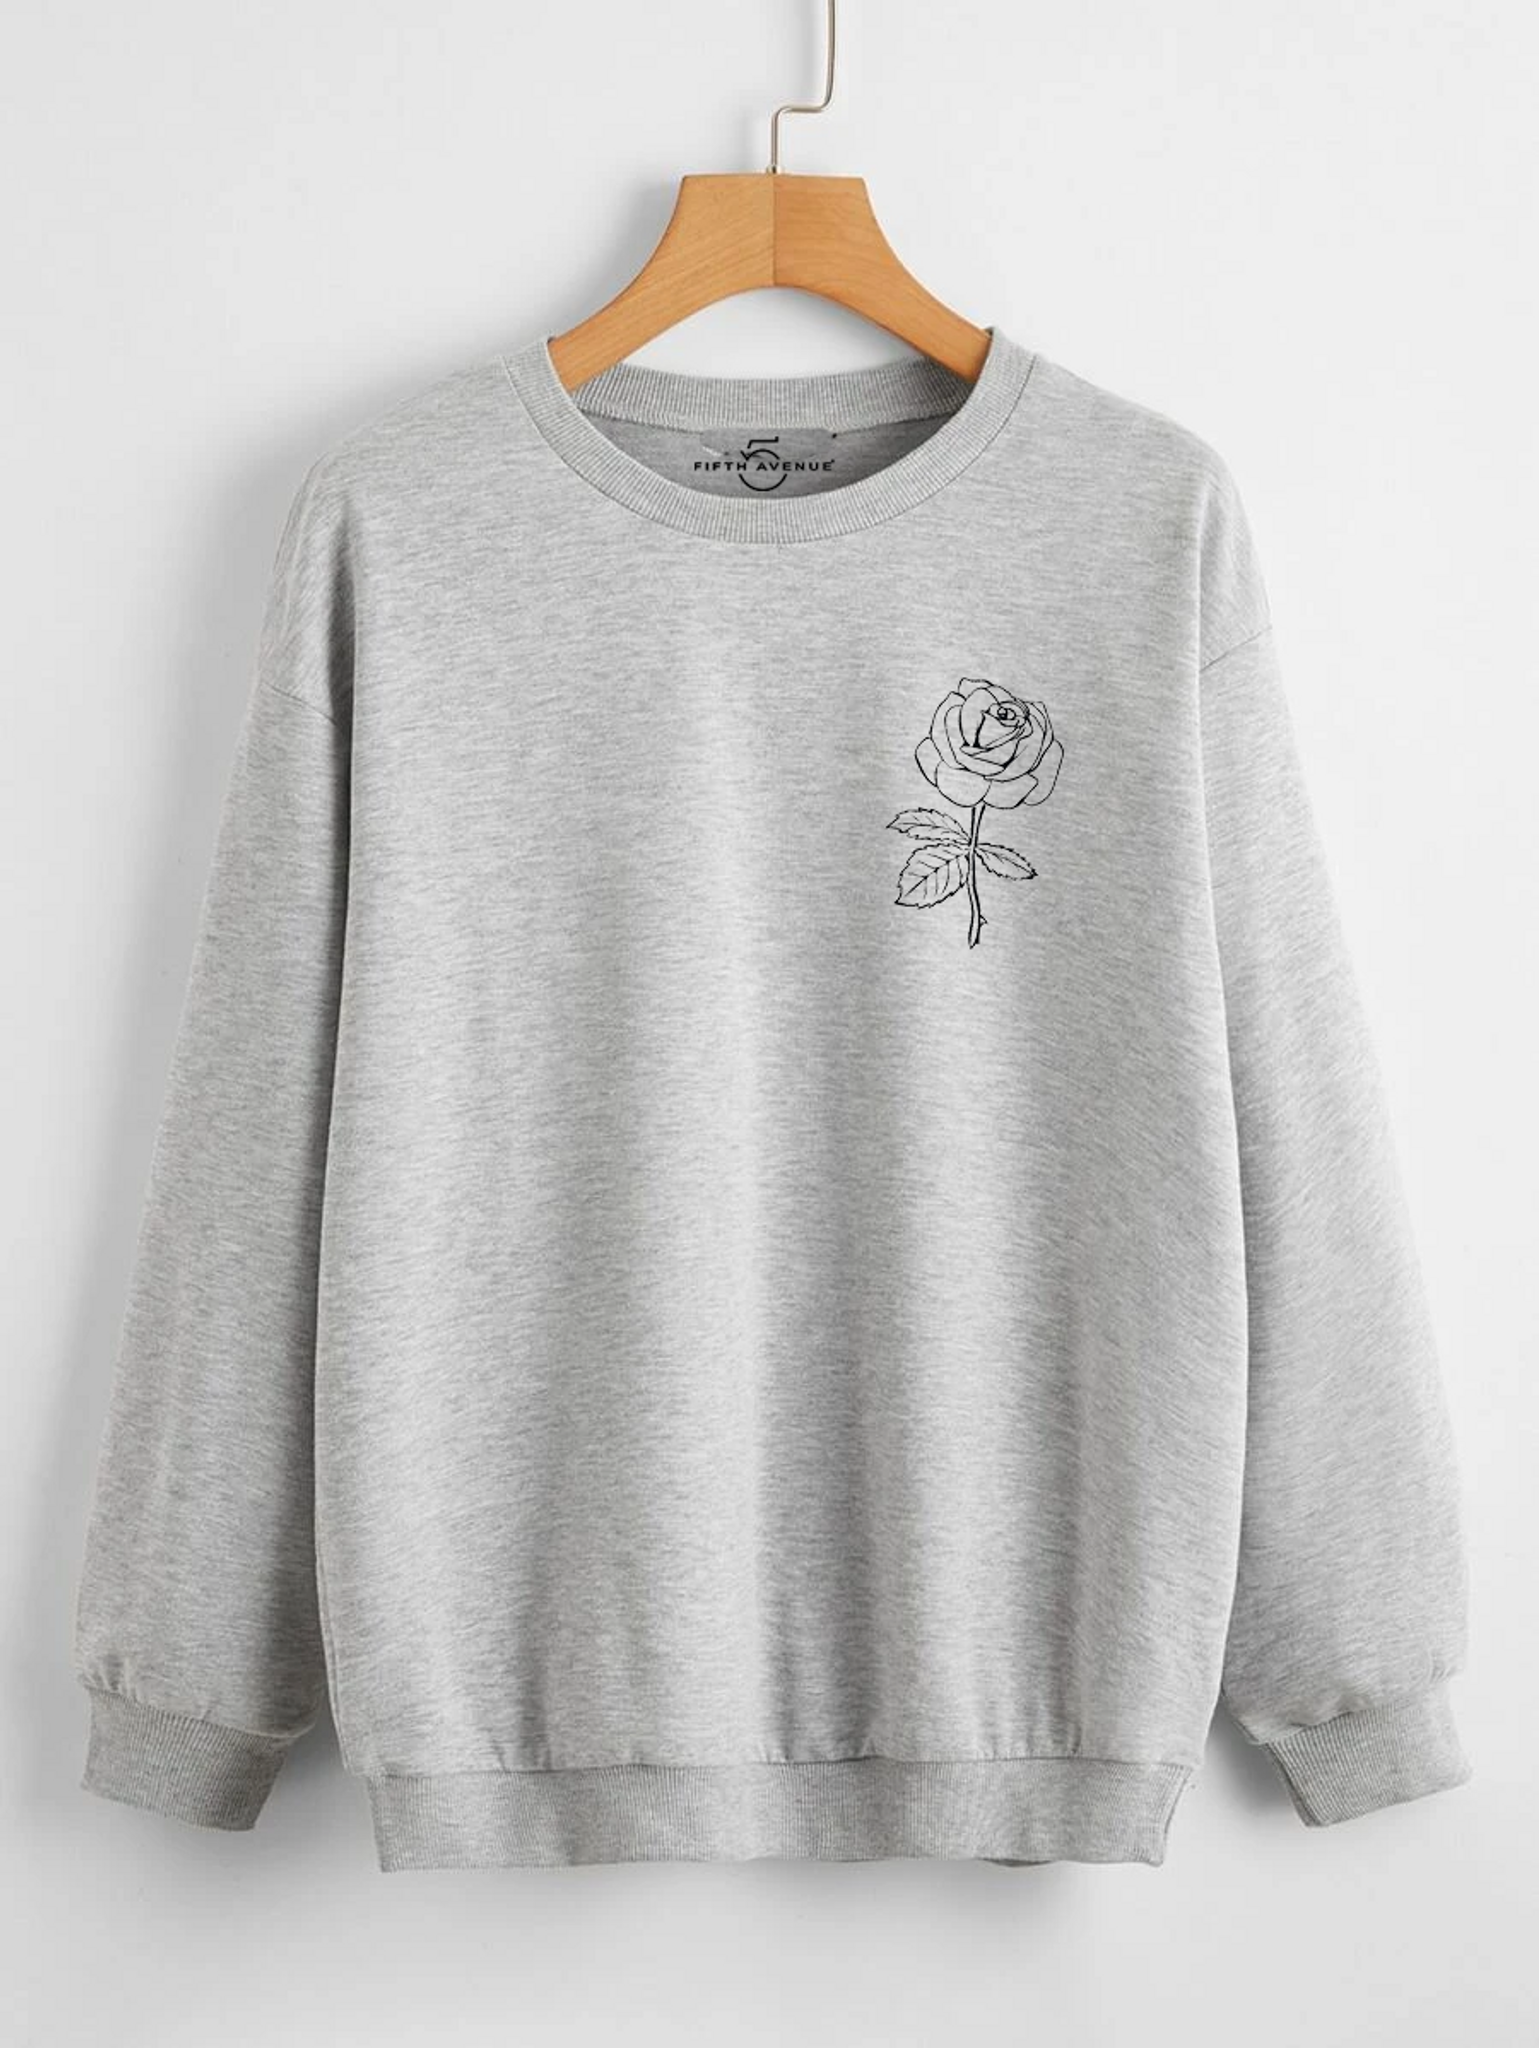 Fifth Avenue DIFT72 Rose Pocket Printed Sweatshirt - Grey